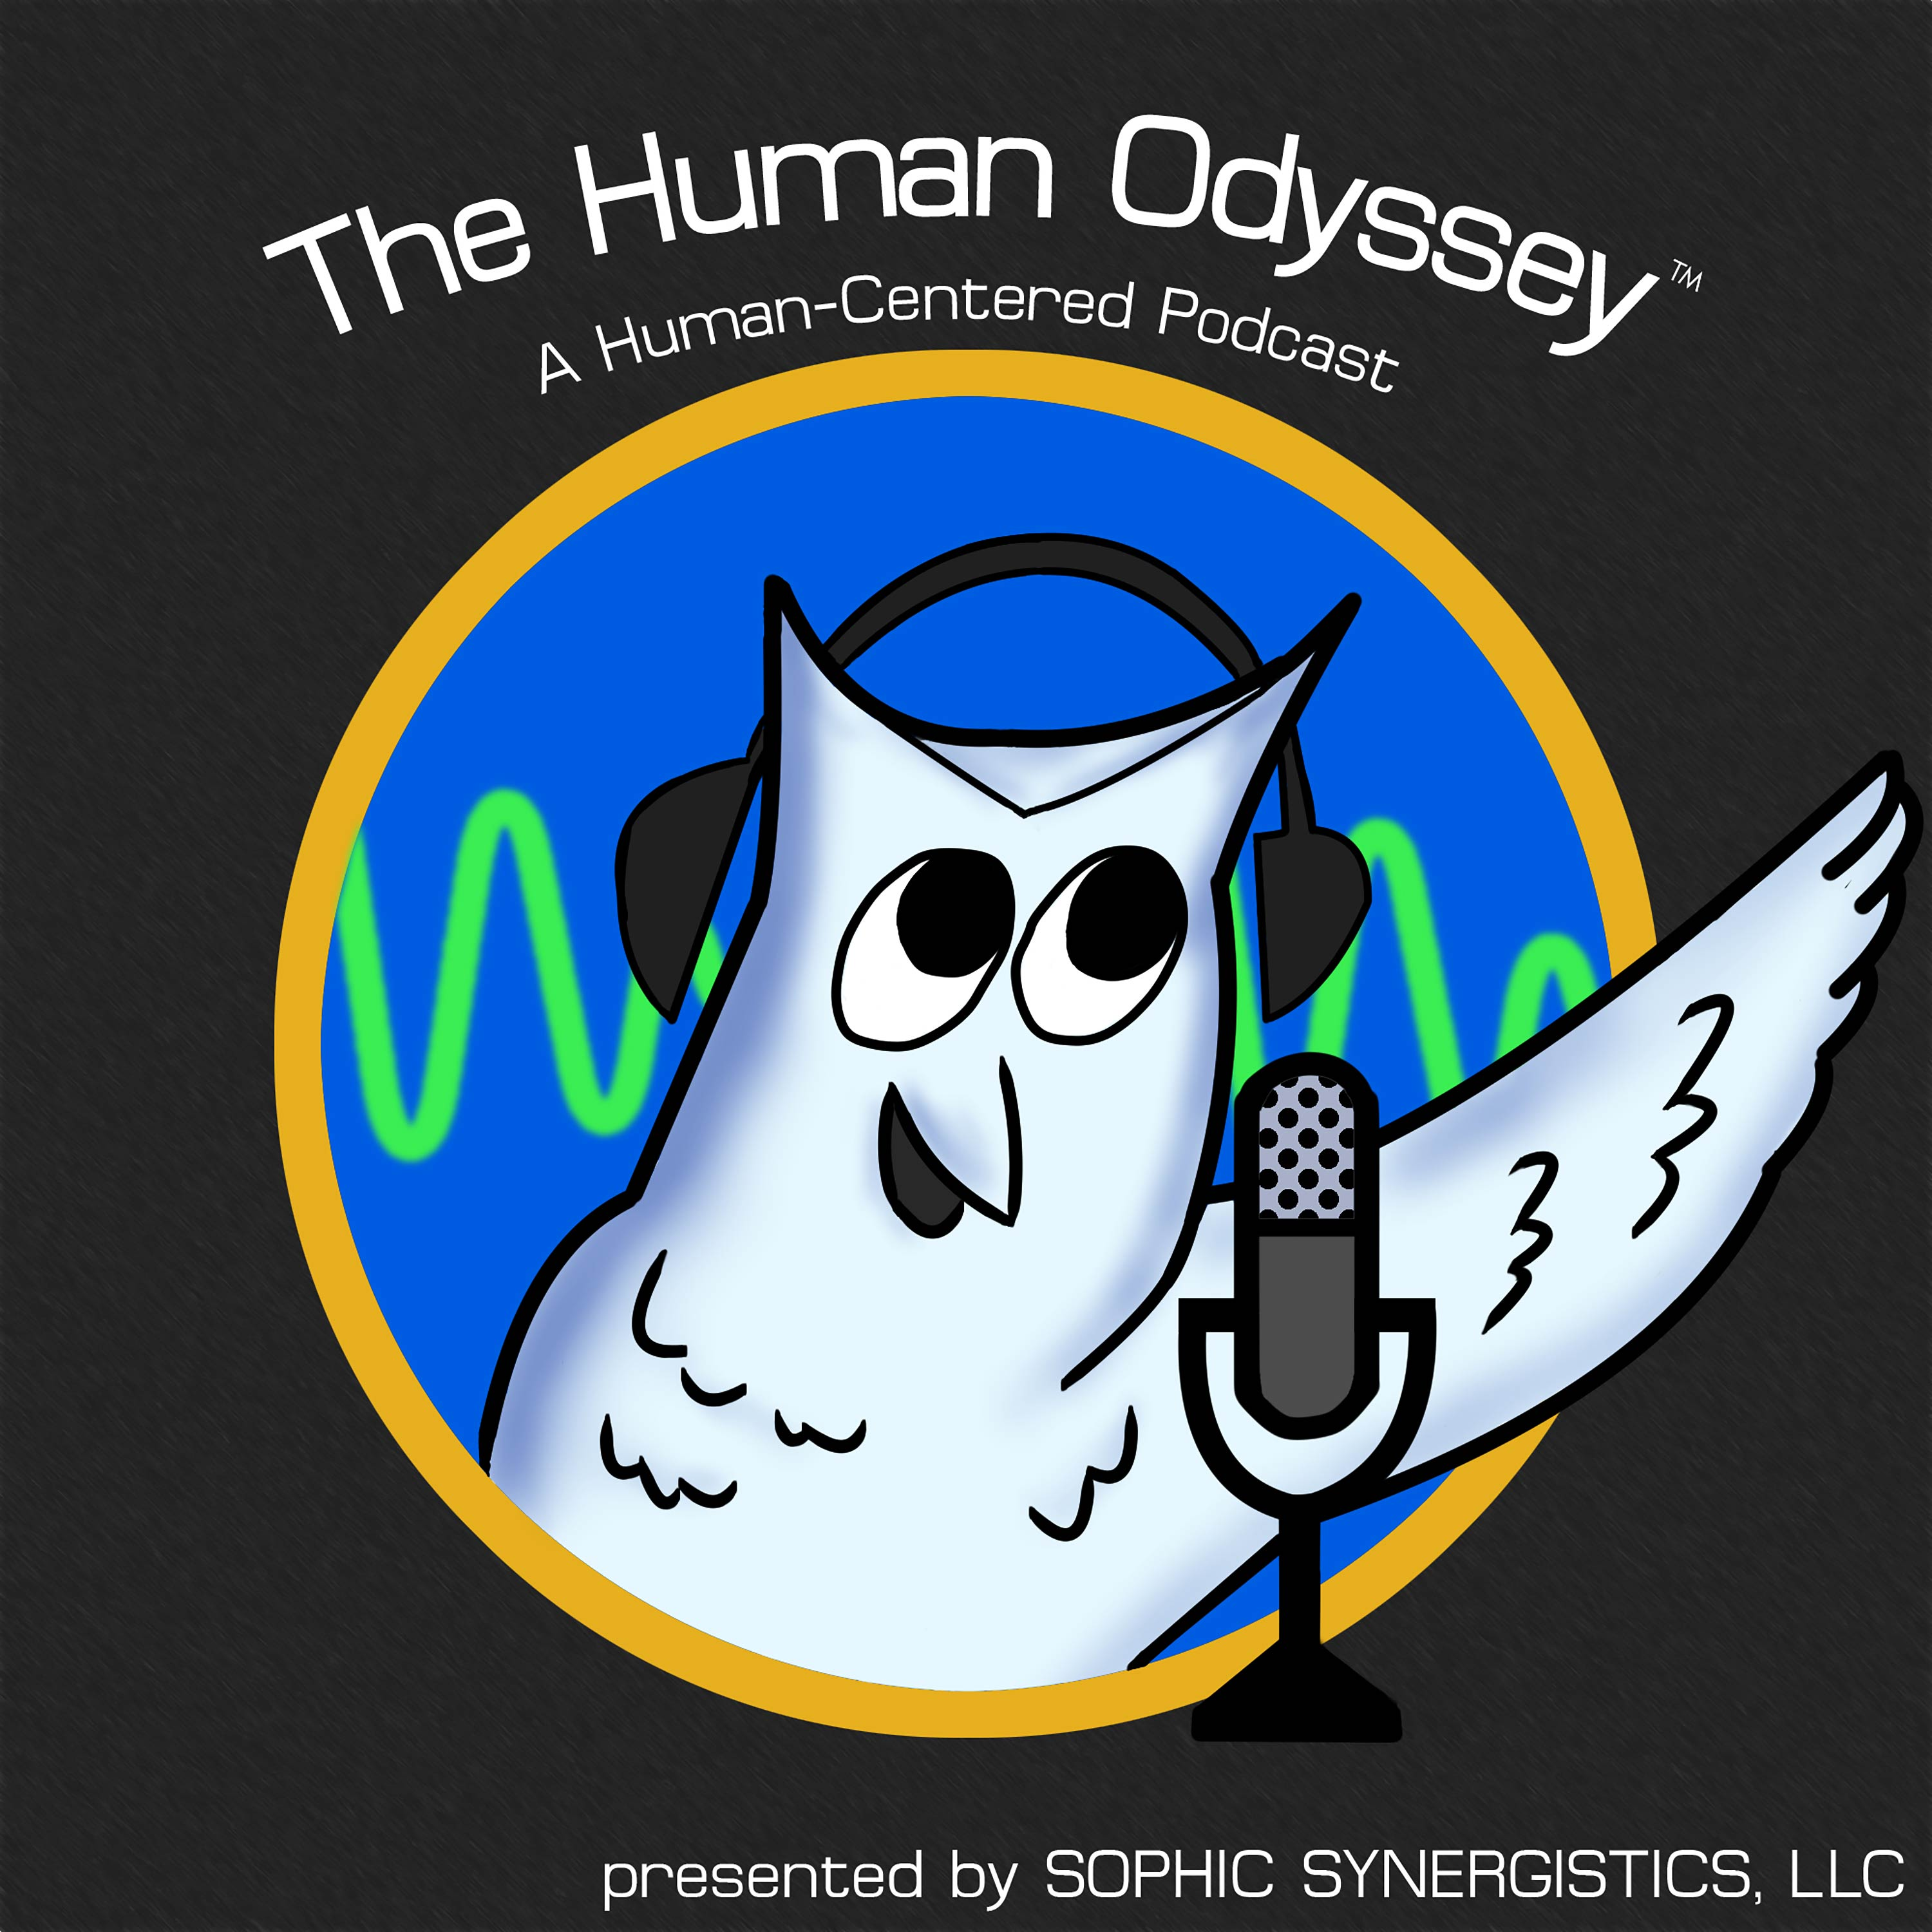 Artwork for podcast The Human Odyssey